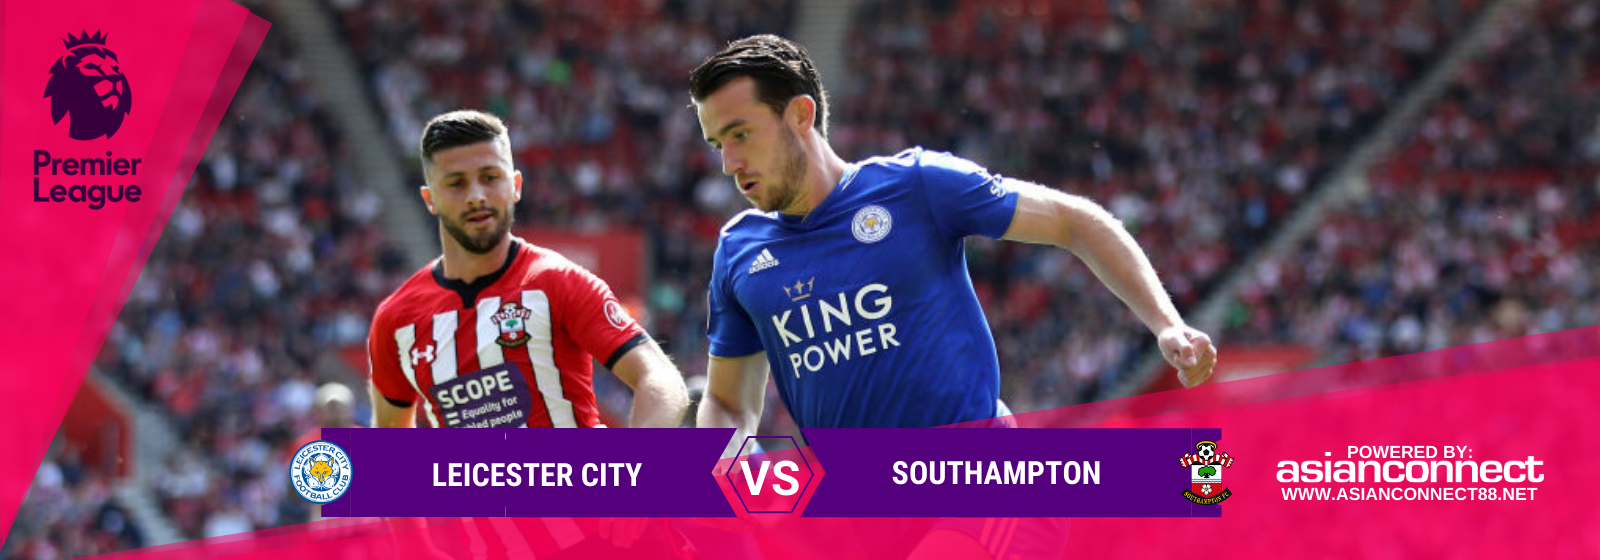 Asianconnect: Leicester City vs Southampton